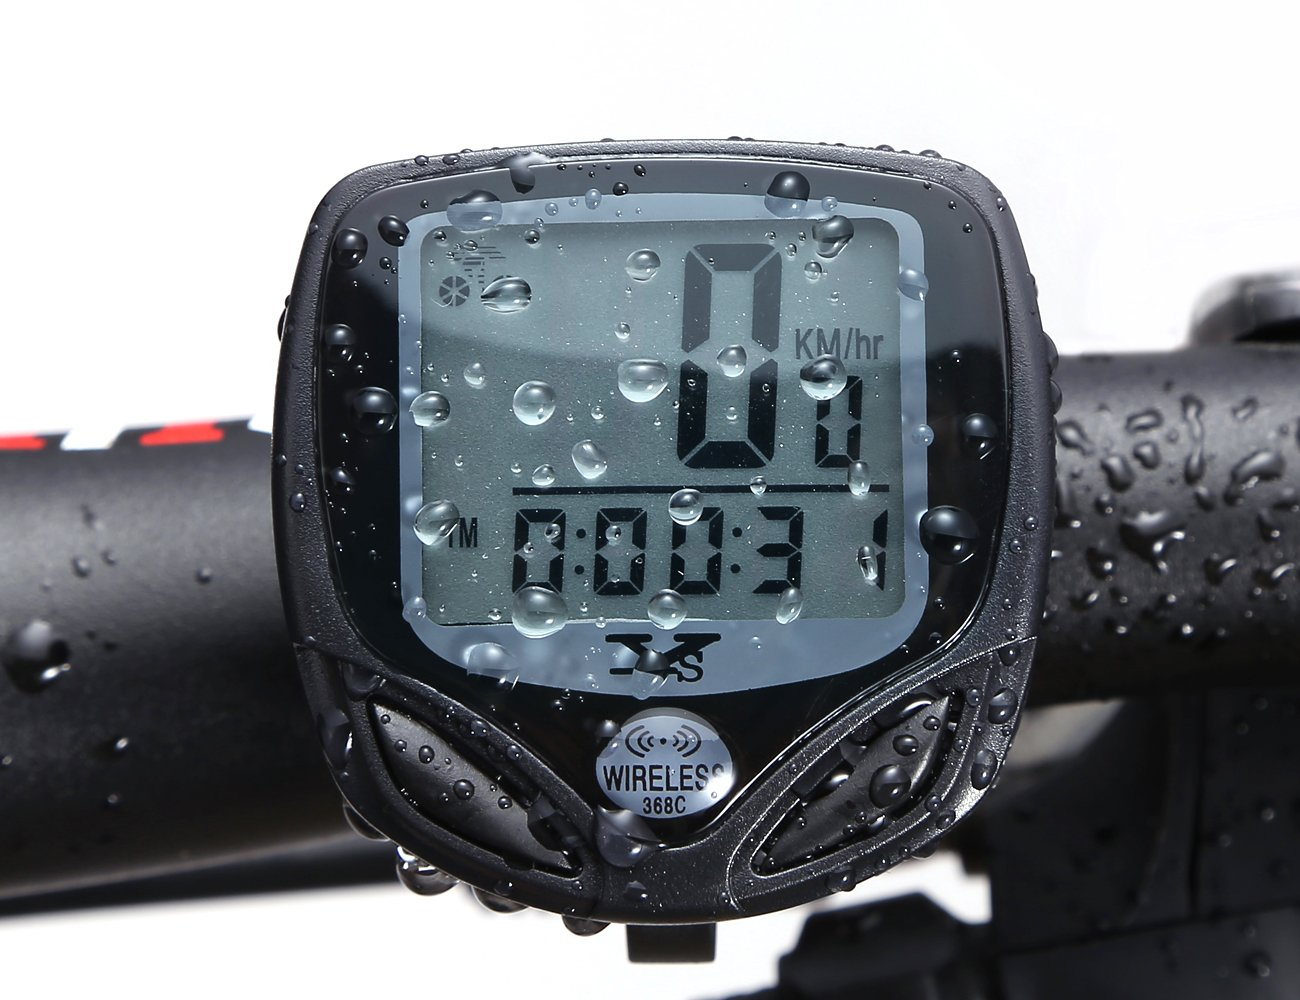 Wireless Bike computer Arova waterproof Bicycle Speedometer Odometer LCD Displays-15 Function Bicycle Cyclocomputer: Track Your Time, Distance, Speed -Black